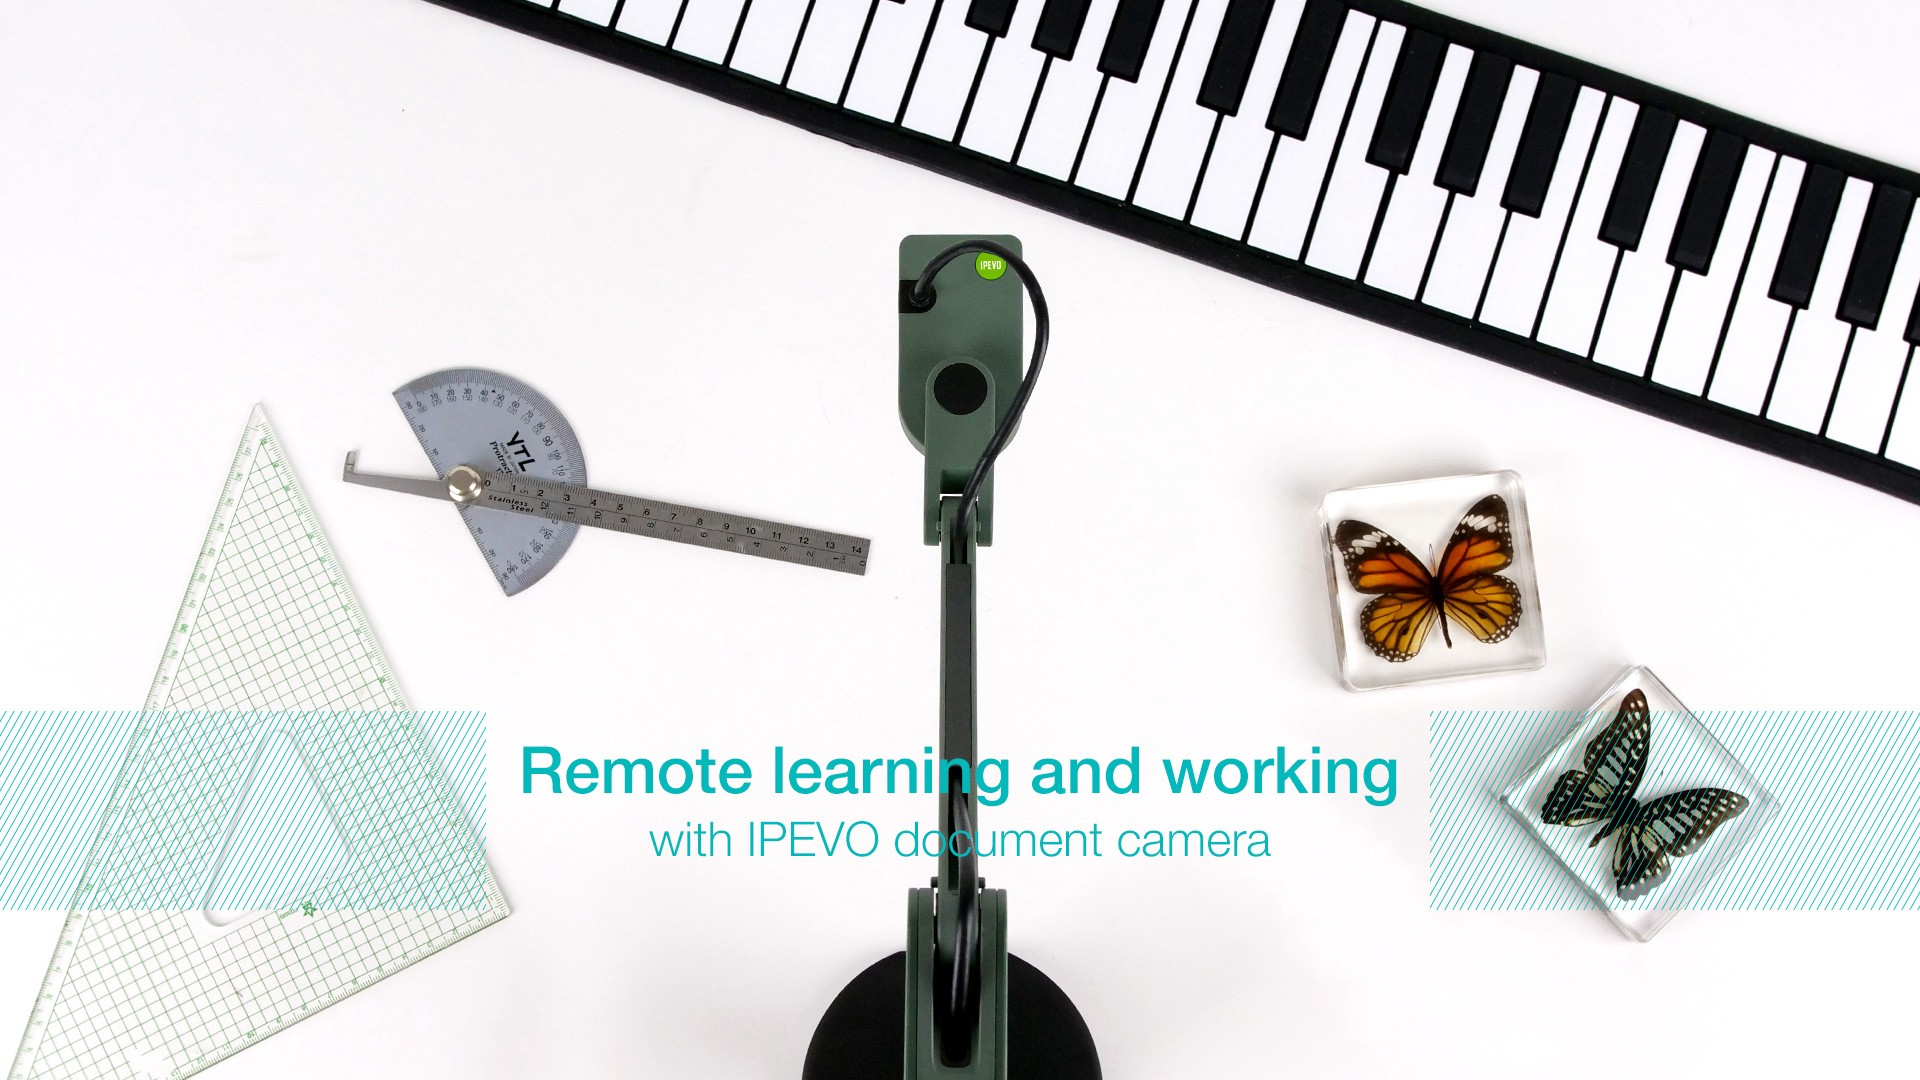 How the IPEVO document camera improves remote learning and working